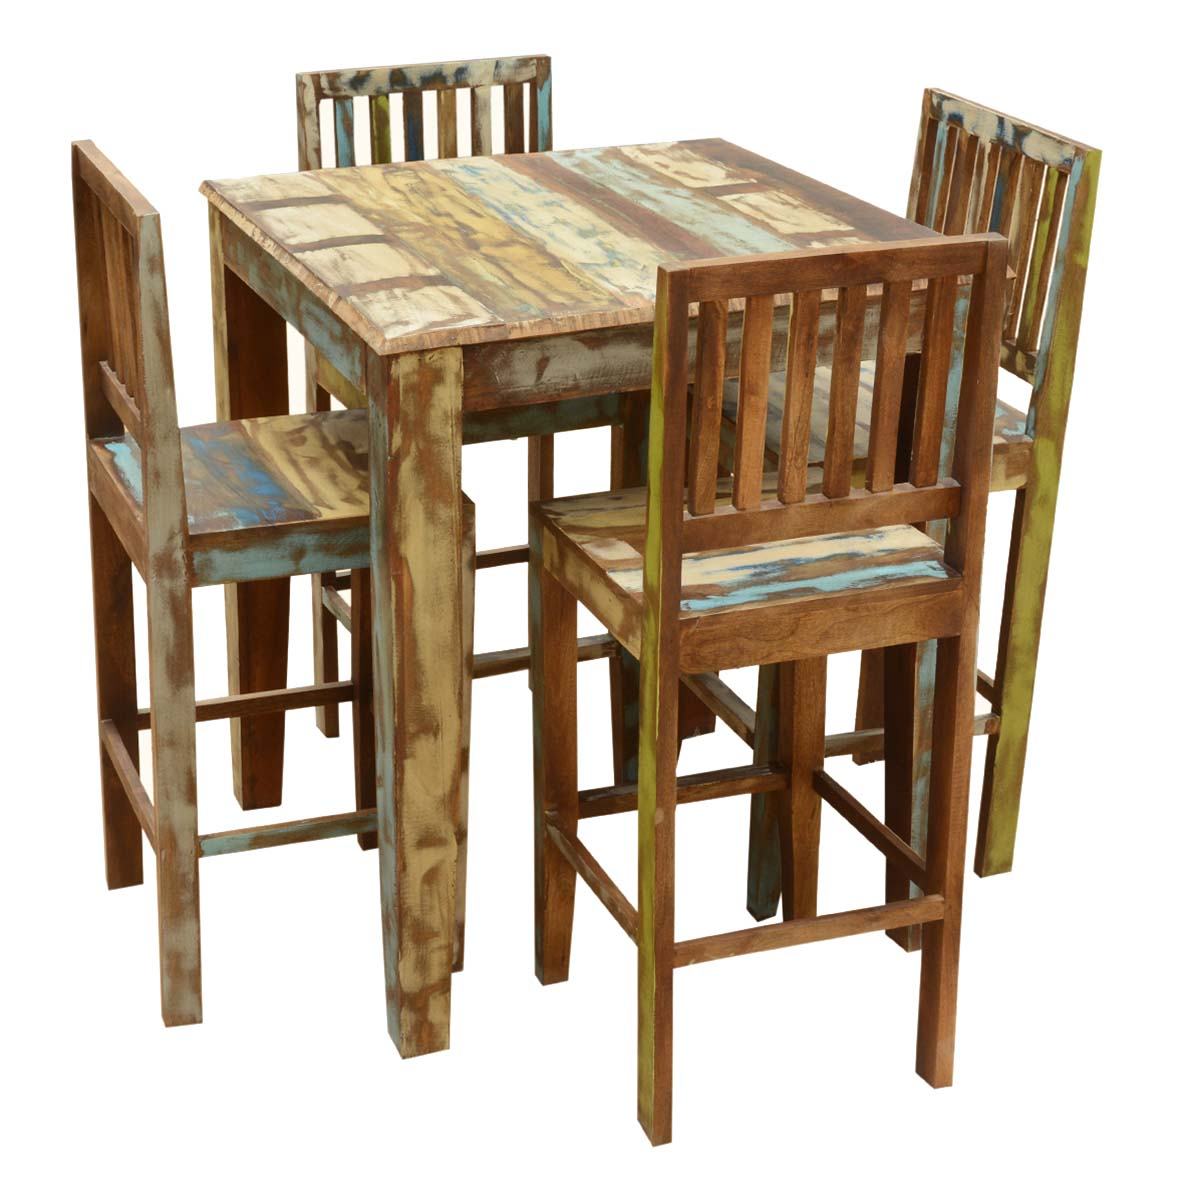 Rustic Reclaimed Wood High Bar Table & Chair Set